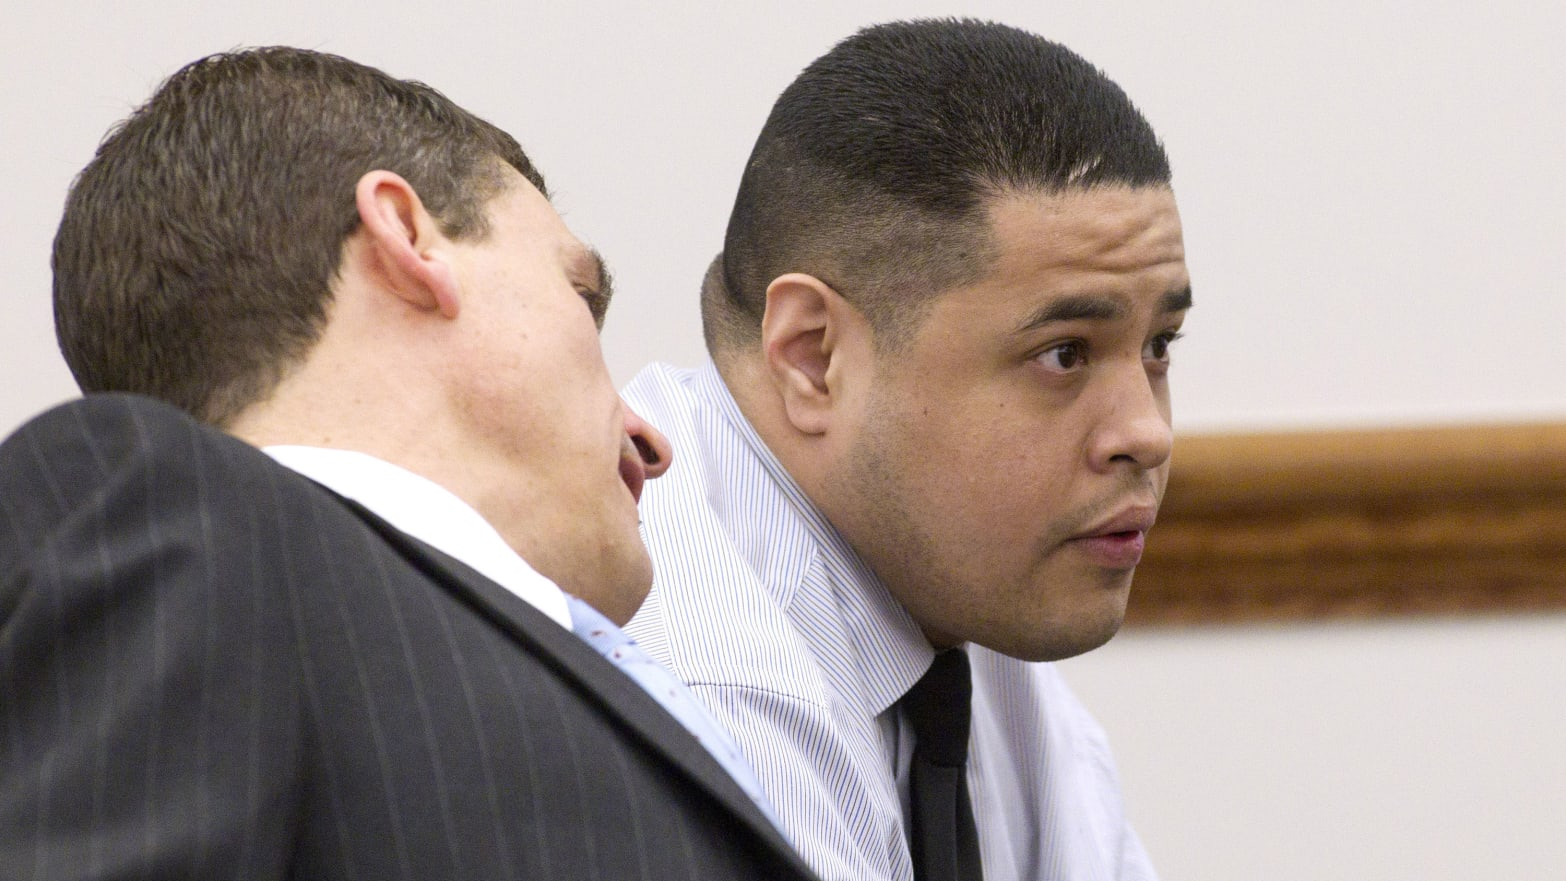 Mark Soliz Says Fetal Alcohol Syndrome Means Texas Can't Execute Him